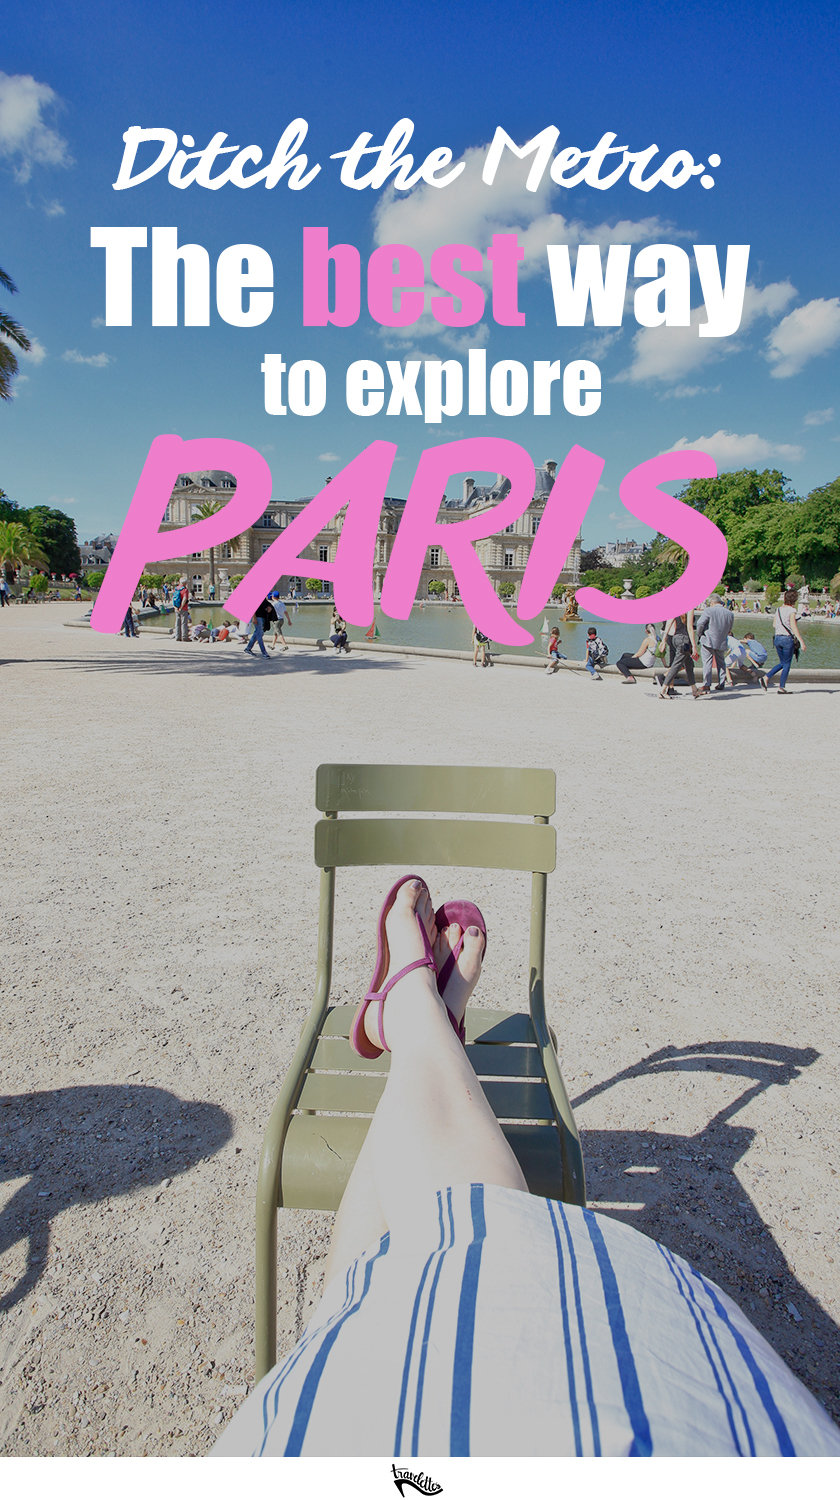 Next time you are in Paris, ditch the Metro and explore by foot - because despite its size, Paris is an incredibly walkable city!